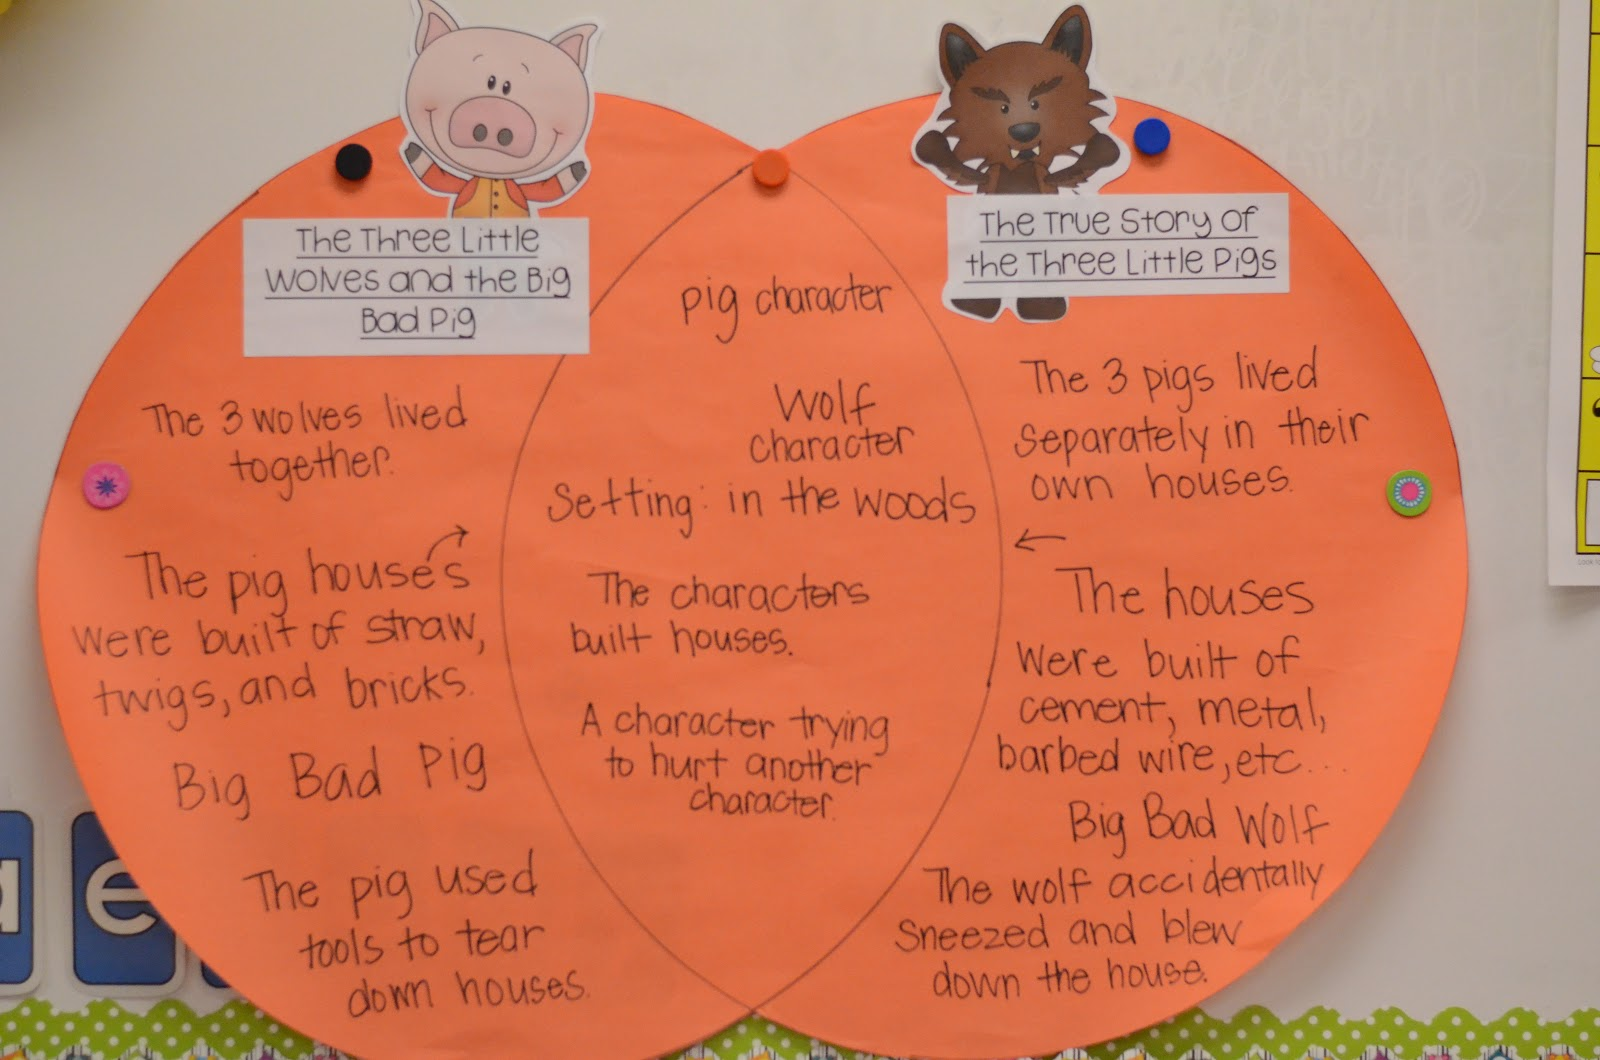 Comparing and Contrasting with the Three Little Pigs - The Lemonade Stand